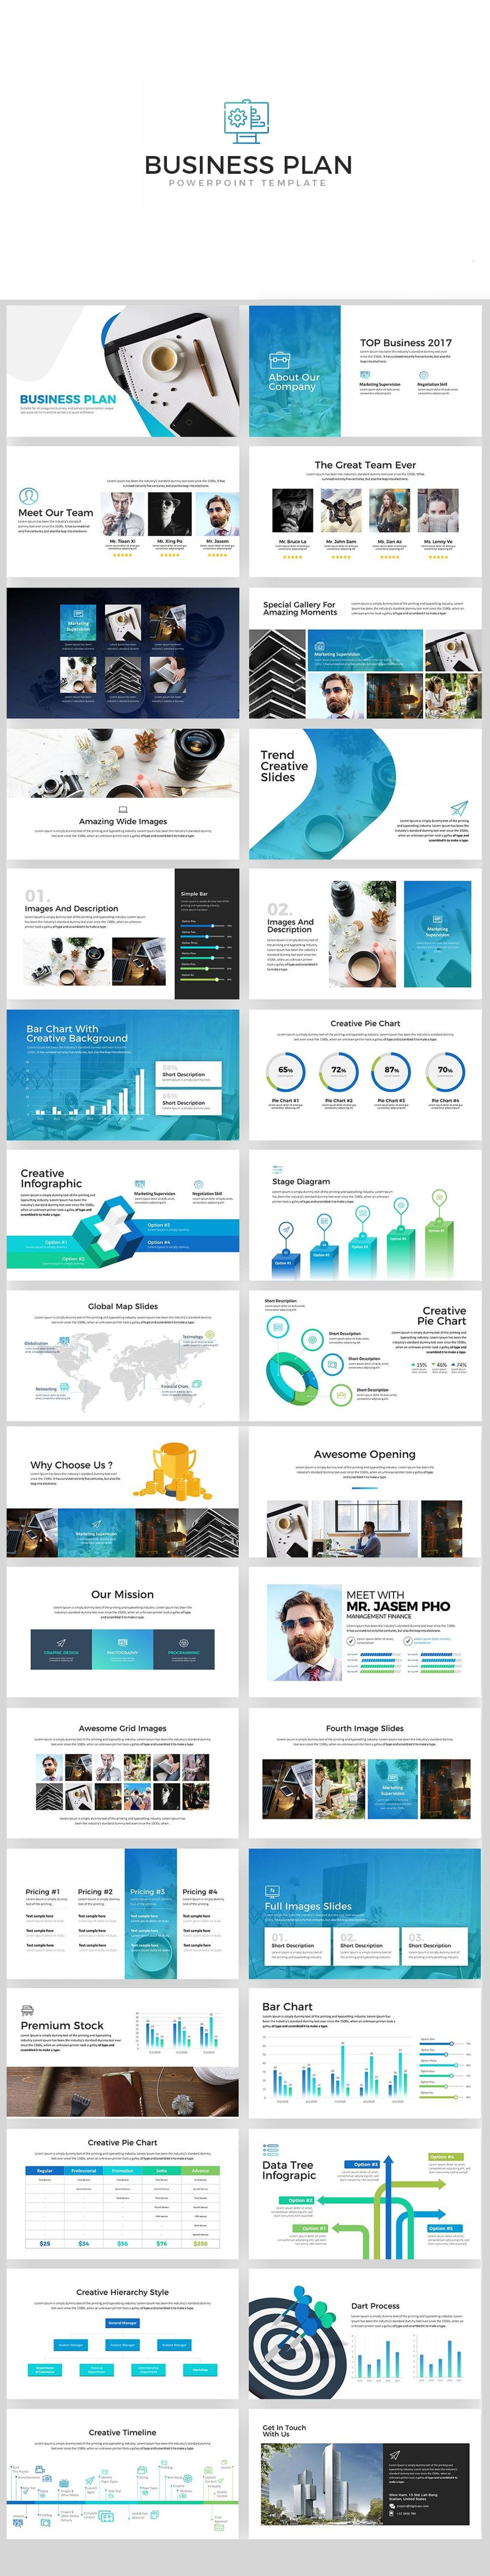 Business plan powerpoint template widescreen powerpoint templates business plan powerpoint template cheaphphosting Images